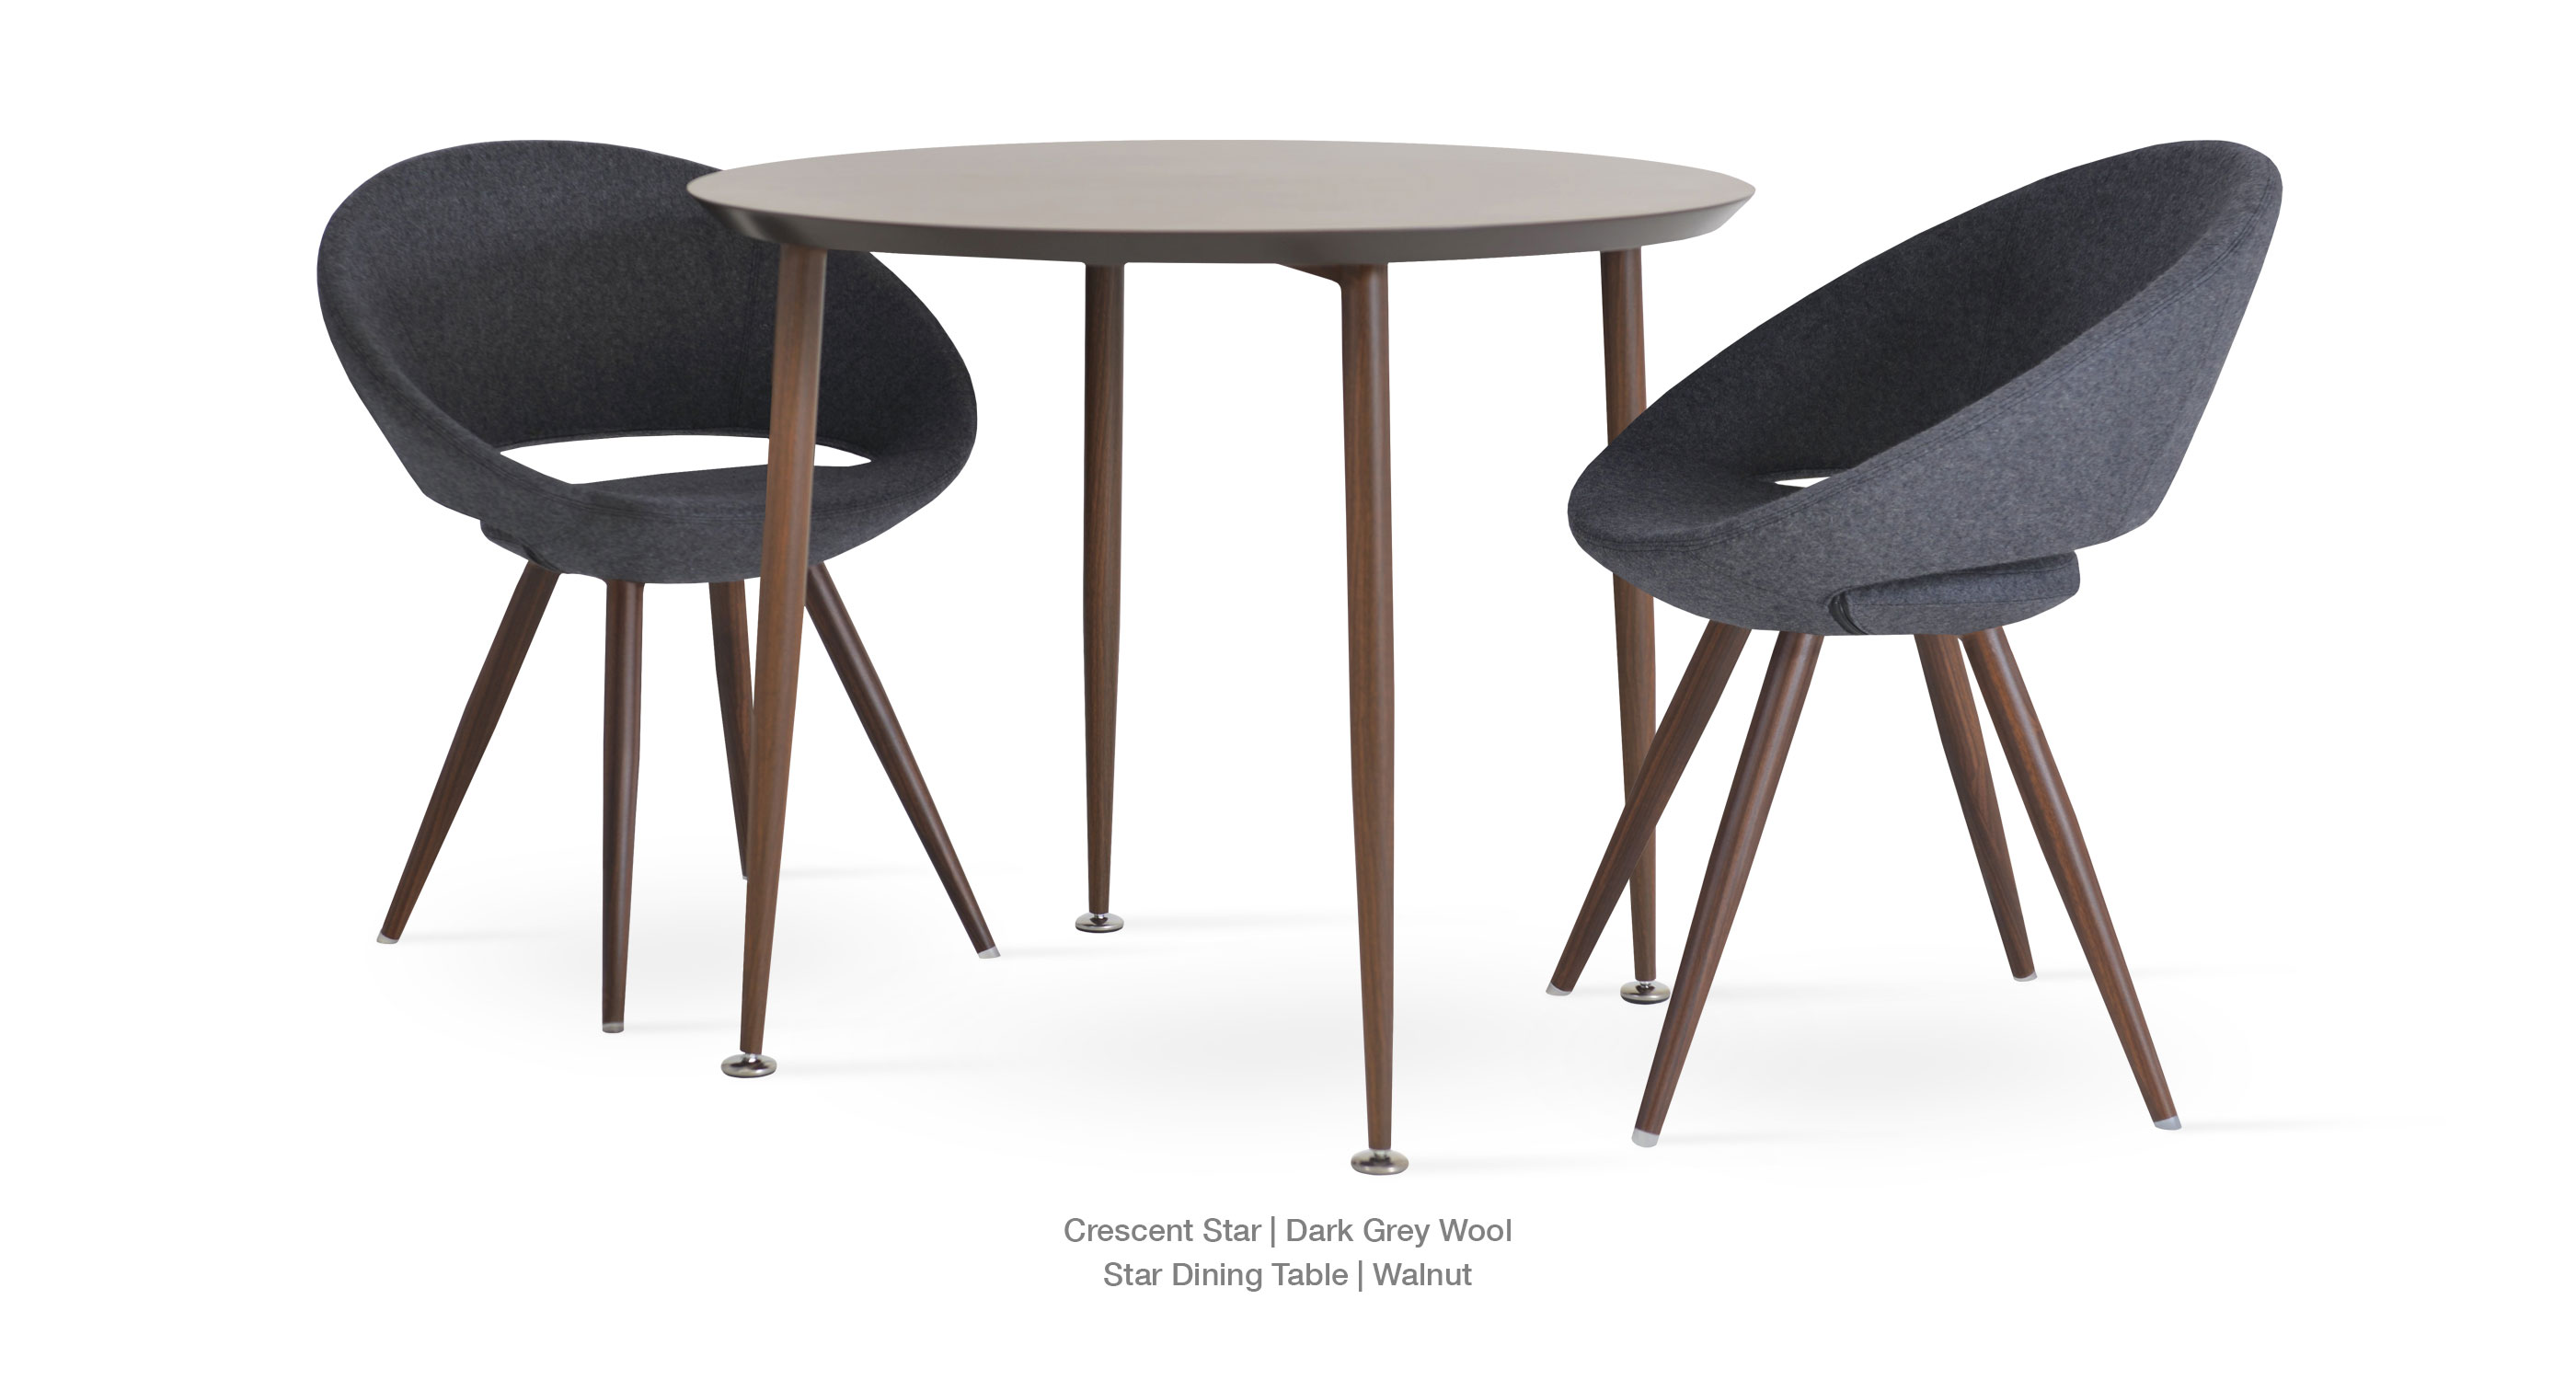 dark grey wool - Star Dining